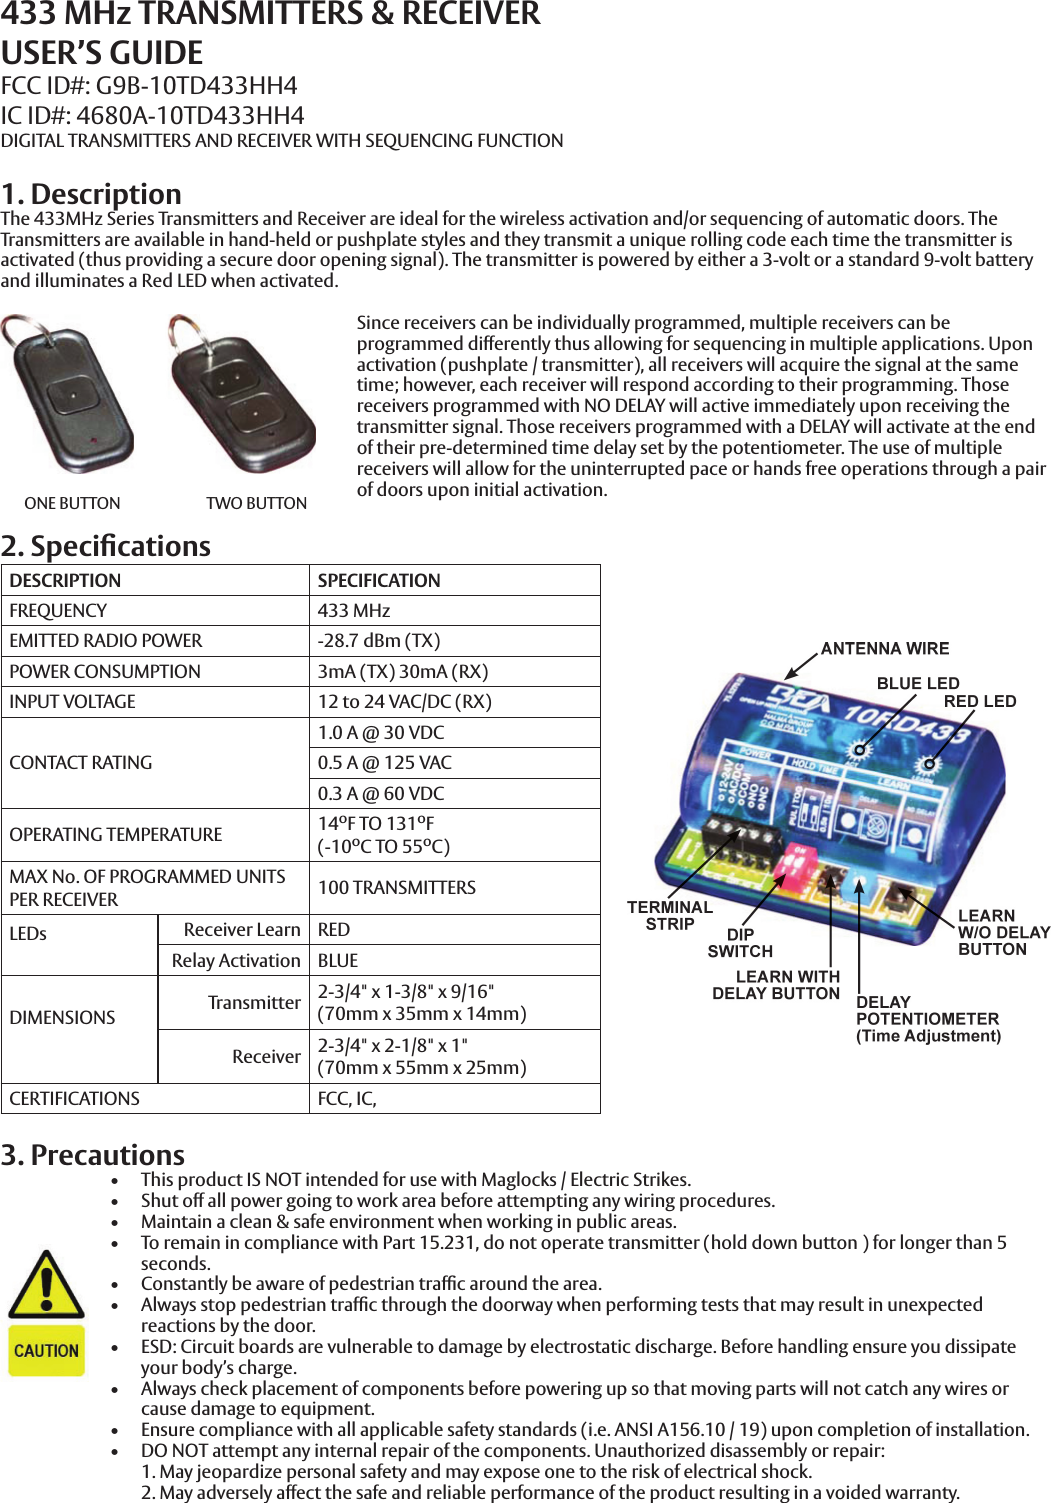 Norton Instructions For Transmitters 536 538 And Radio Frequency